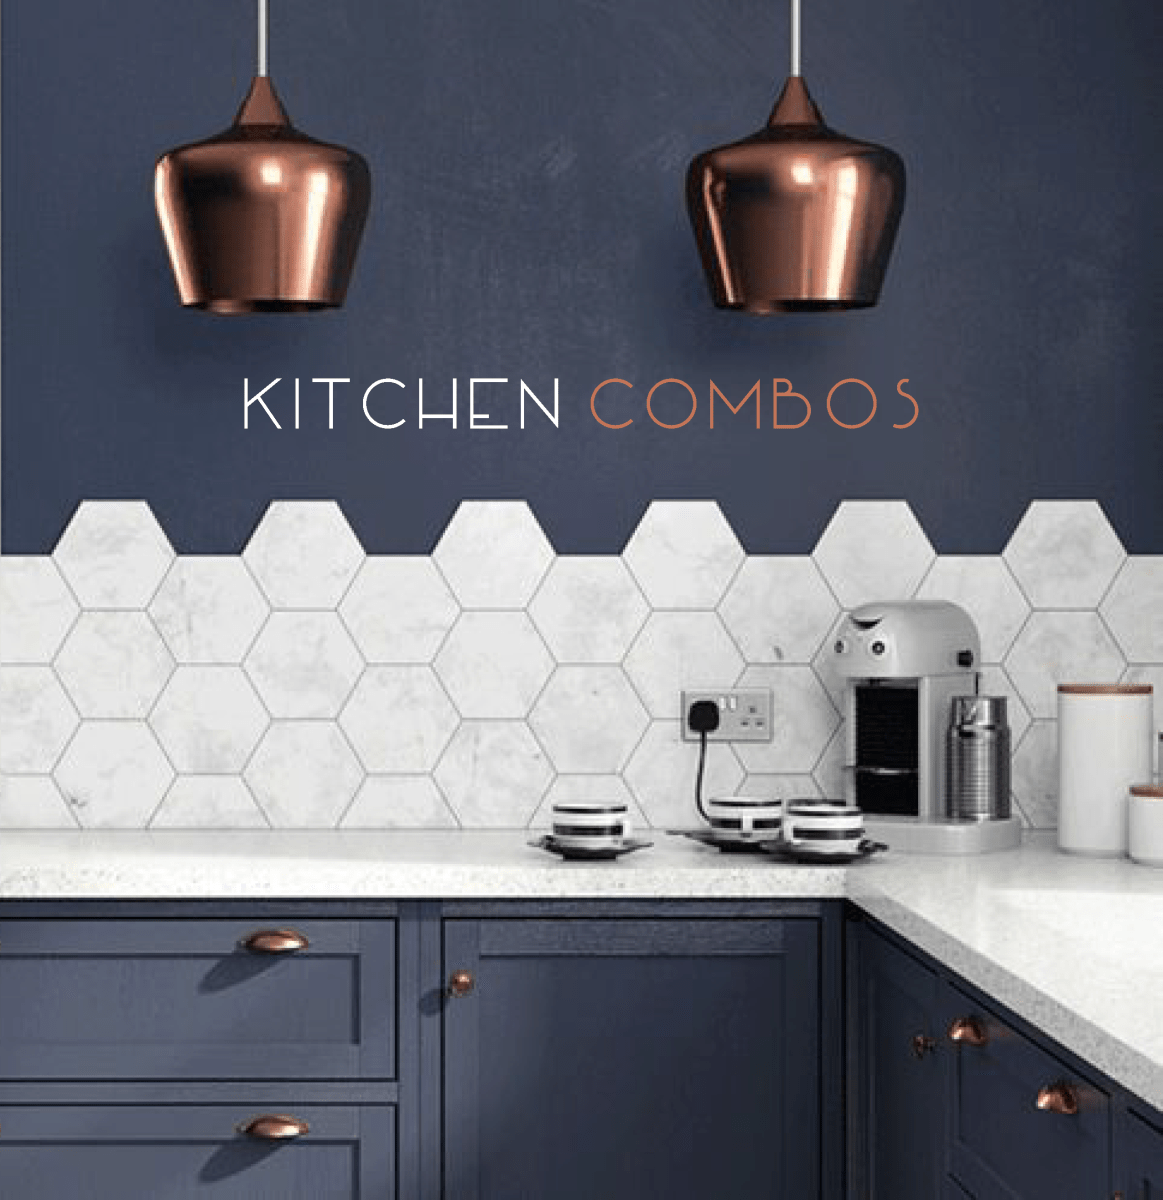 Kitchen Combos